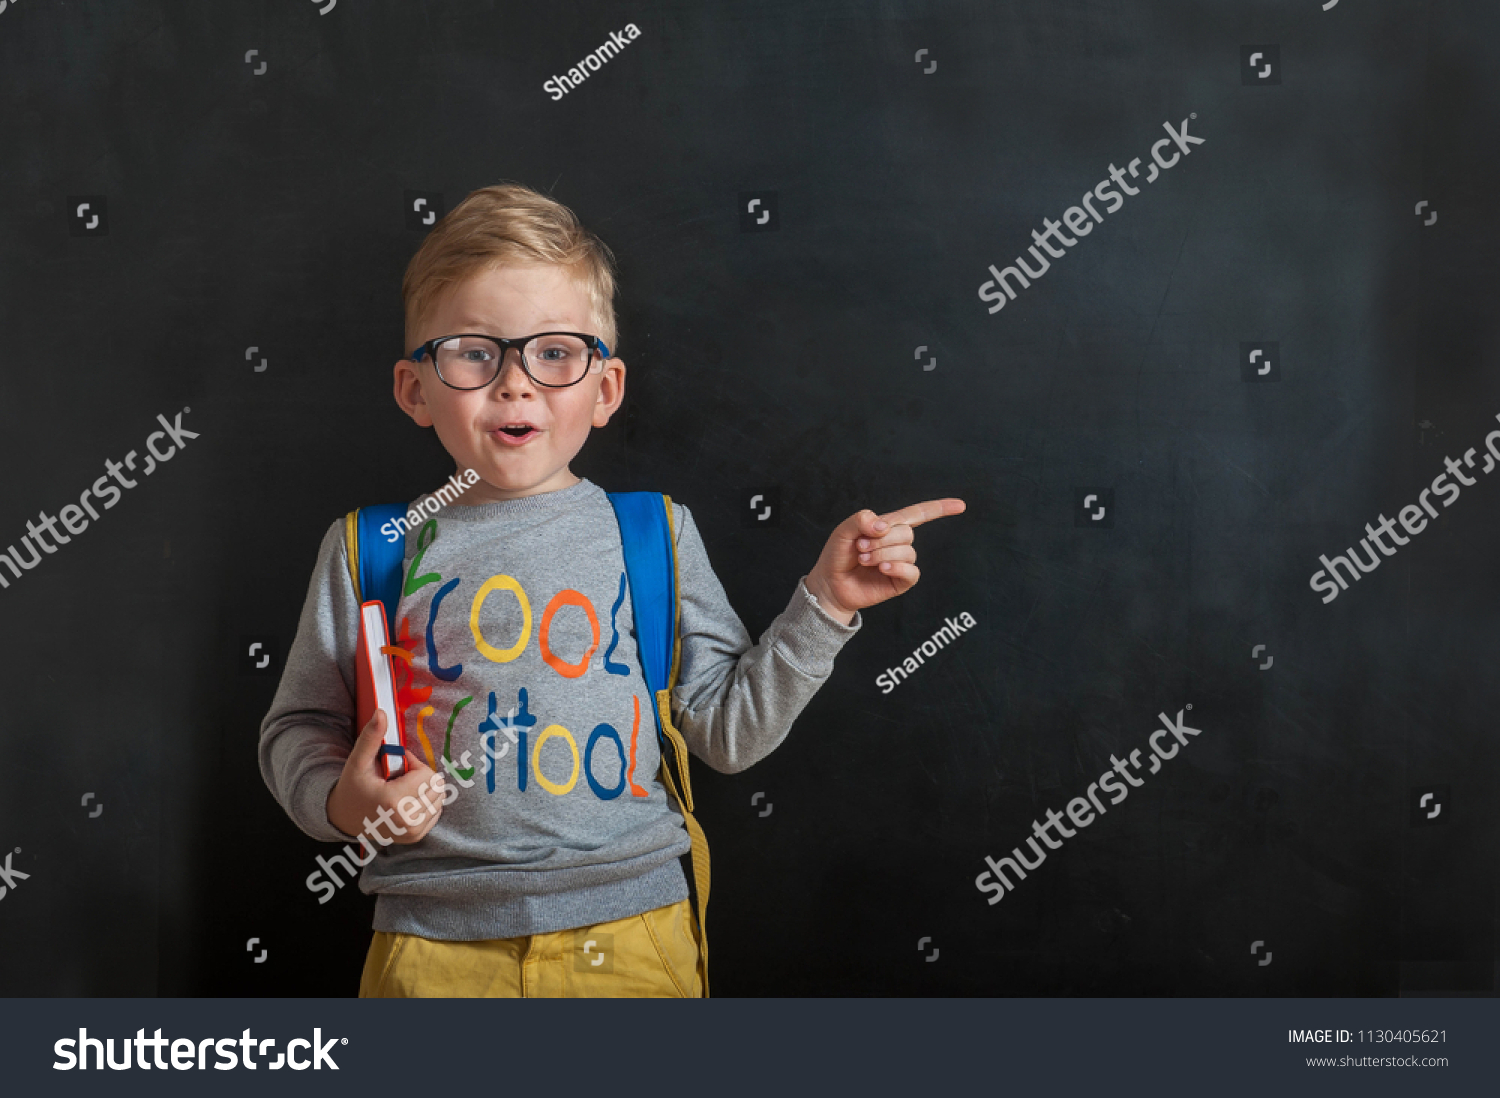 Back to school. Funny little boy in glasses pointing up on blackboard. Child from elementary school with book and bag. Education. Kid with a book #1130405621